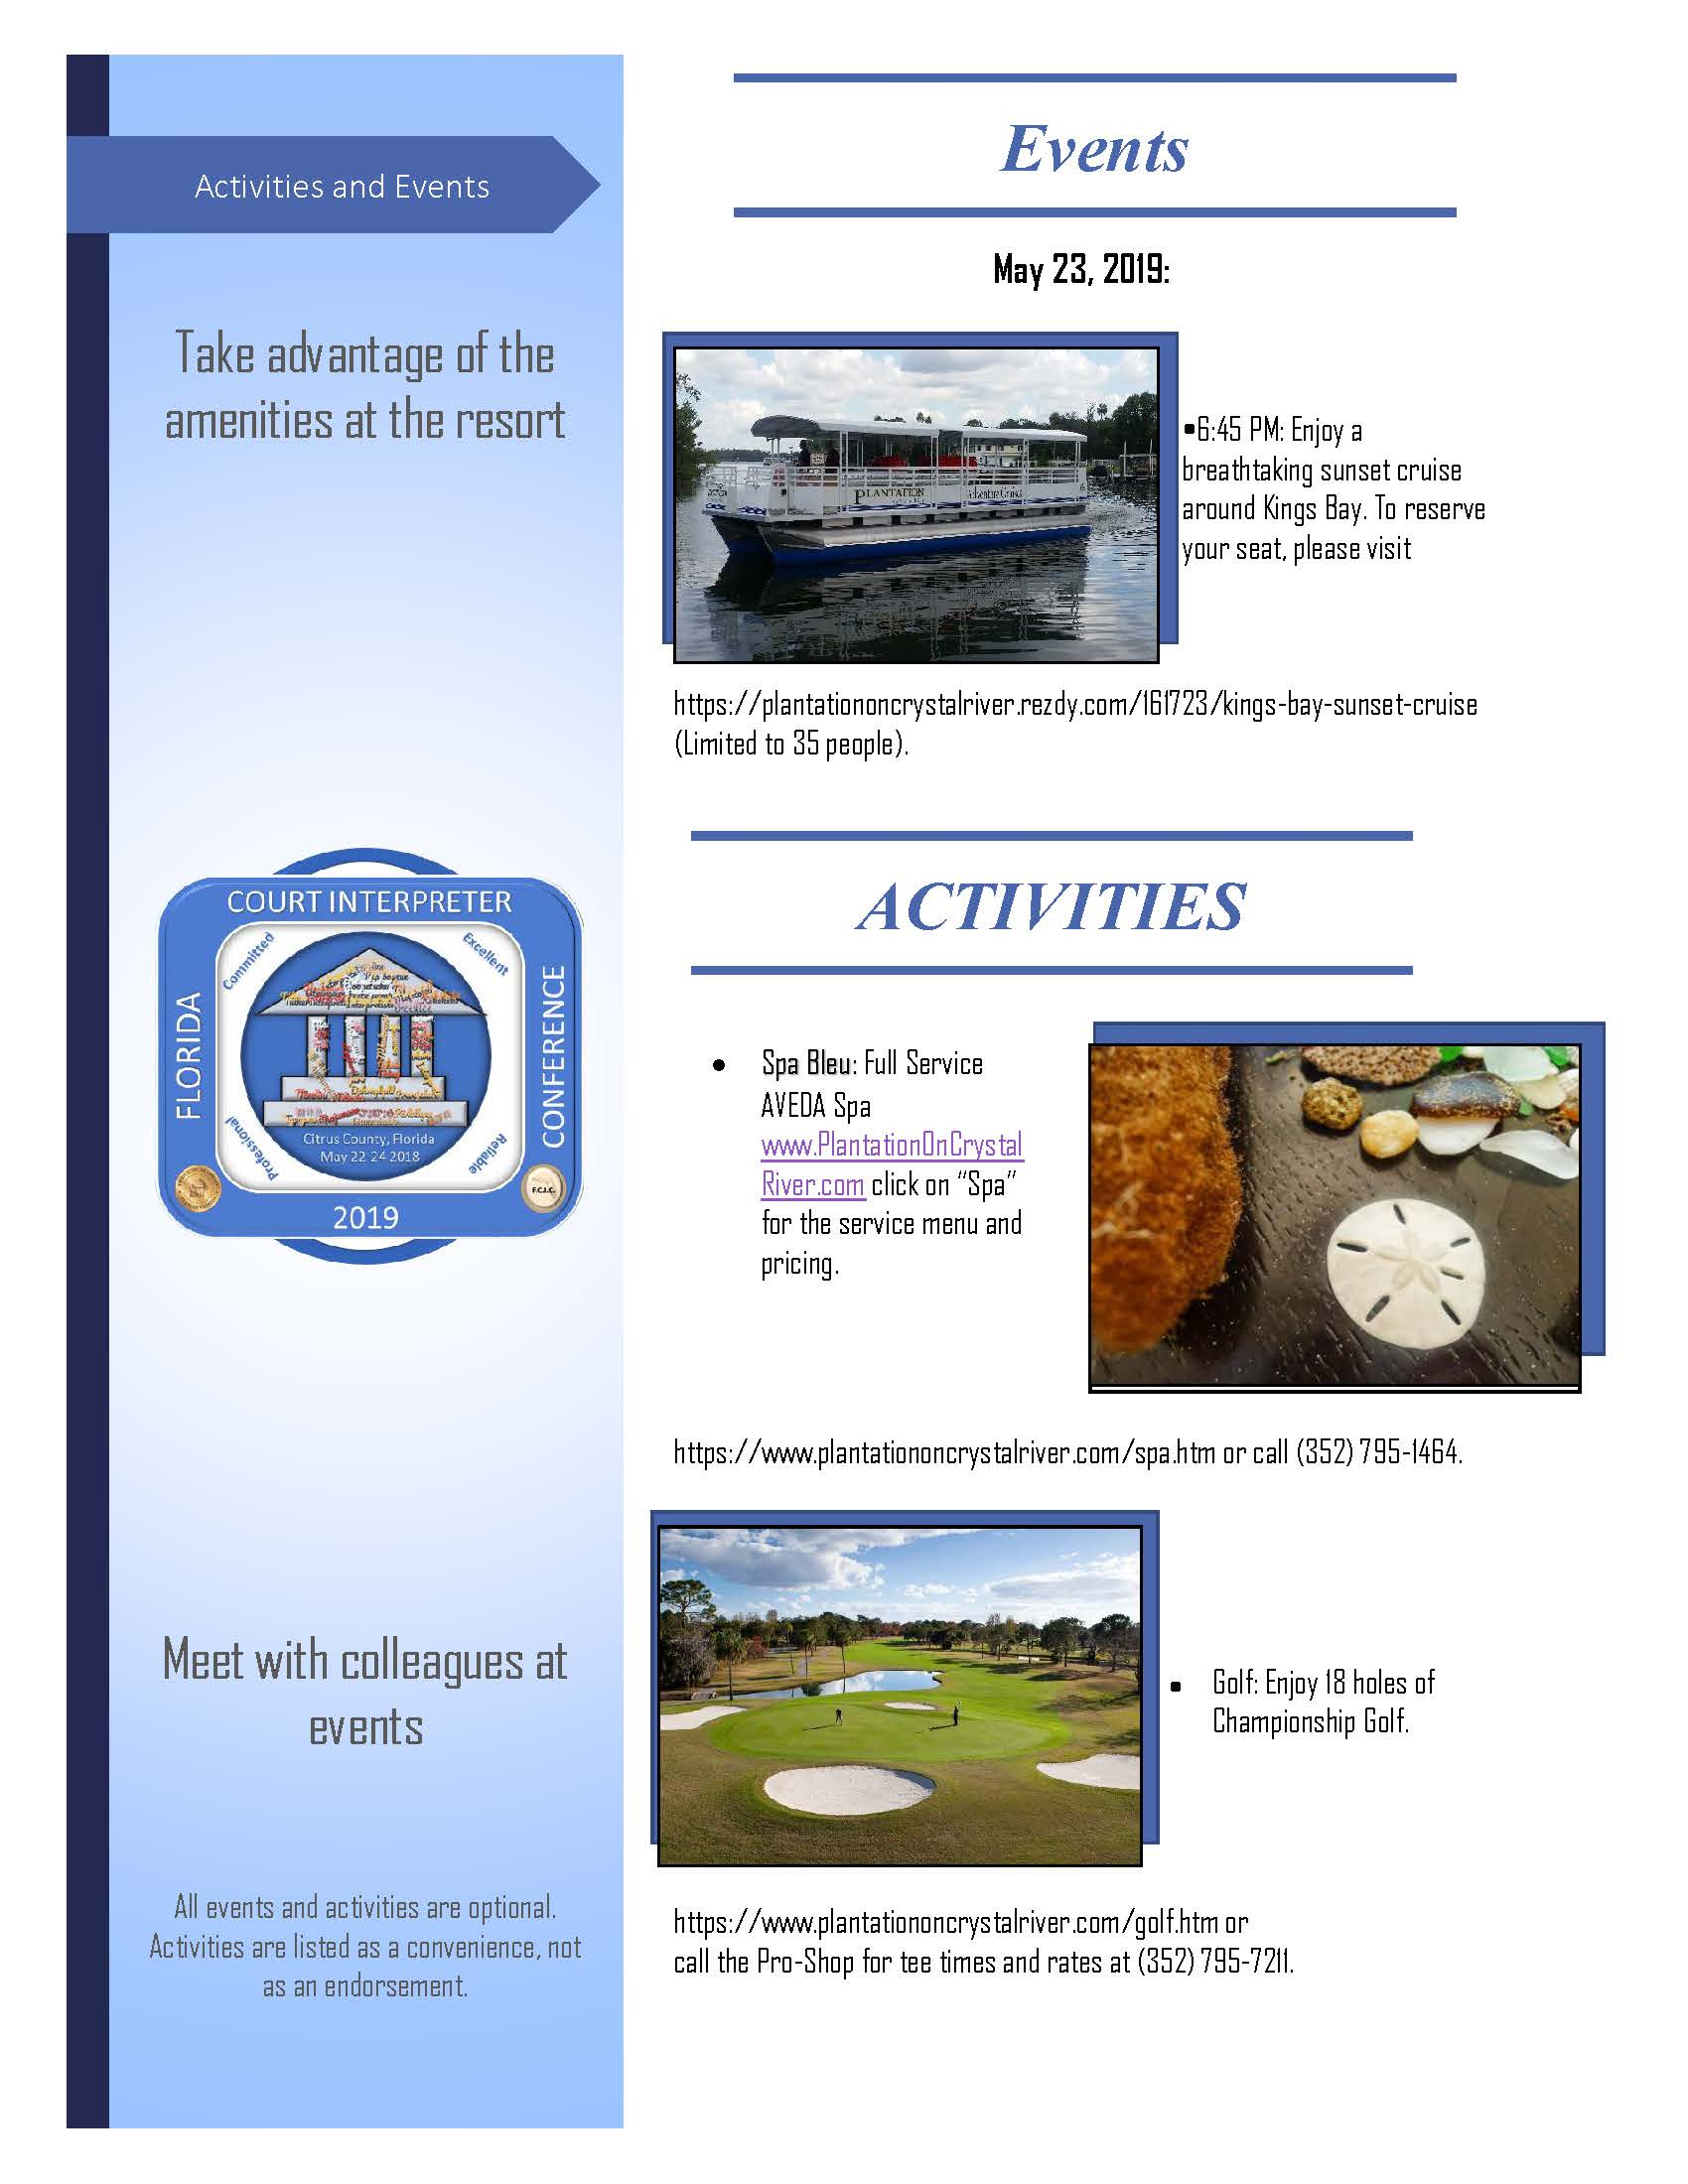 events-and-activities-1_page_2